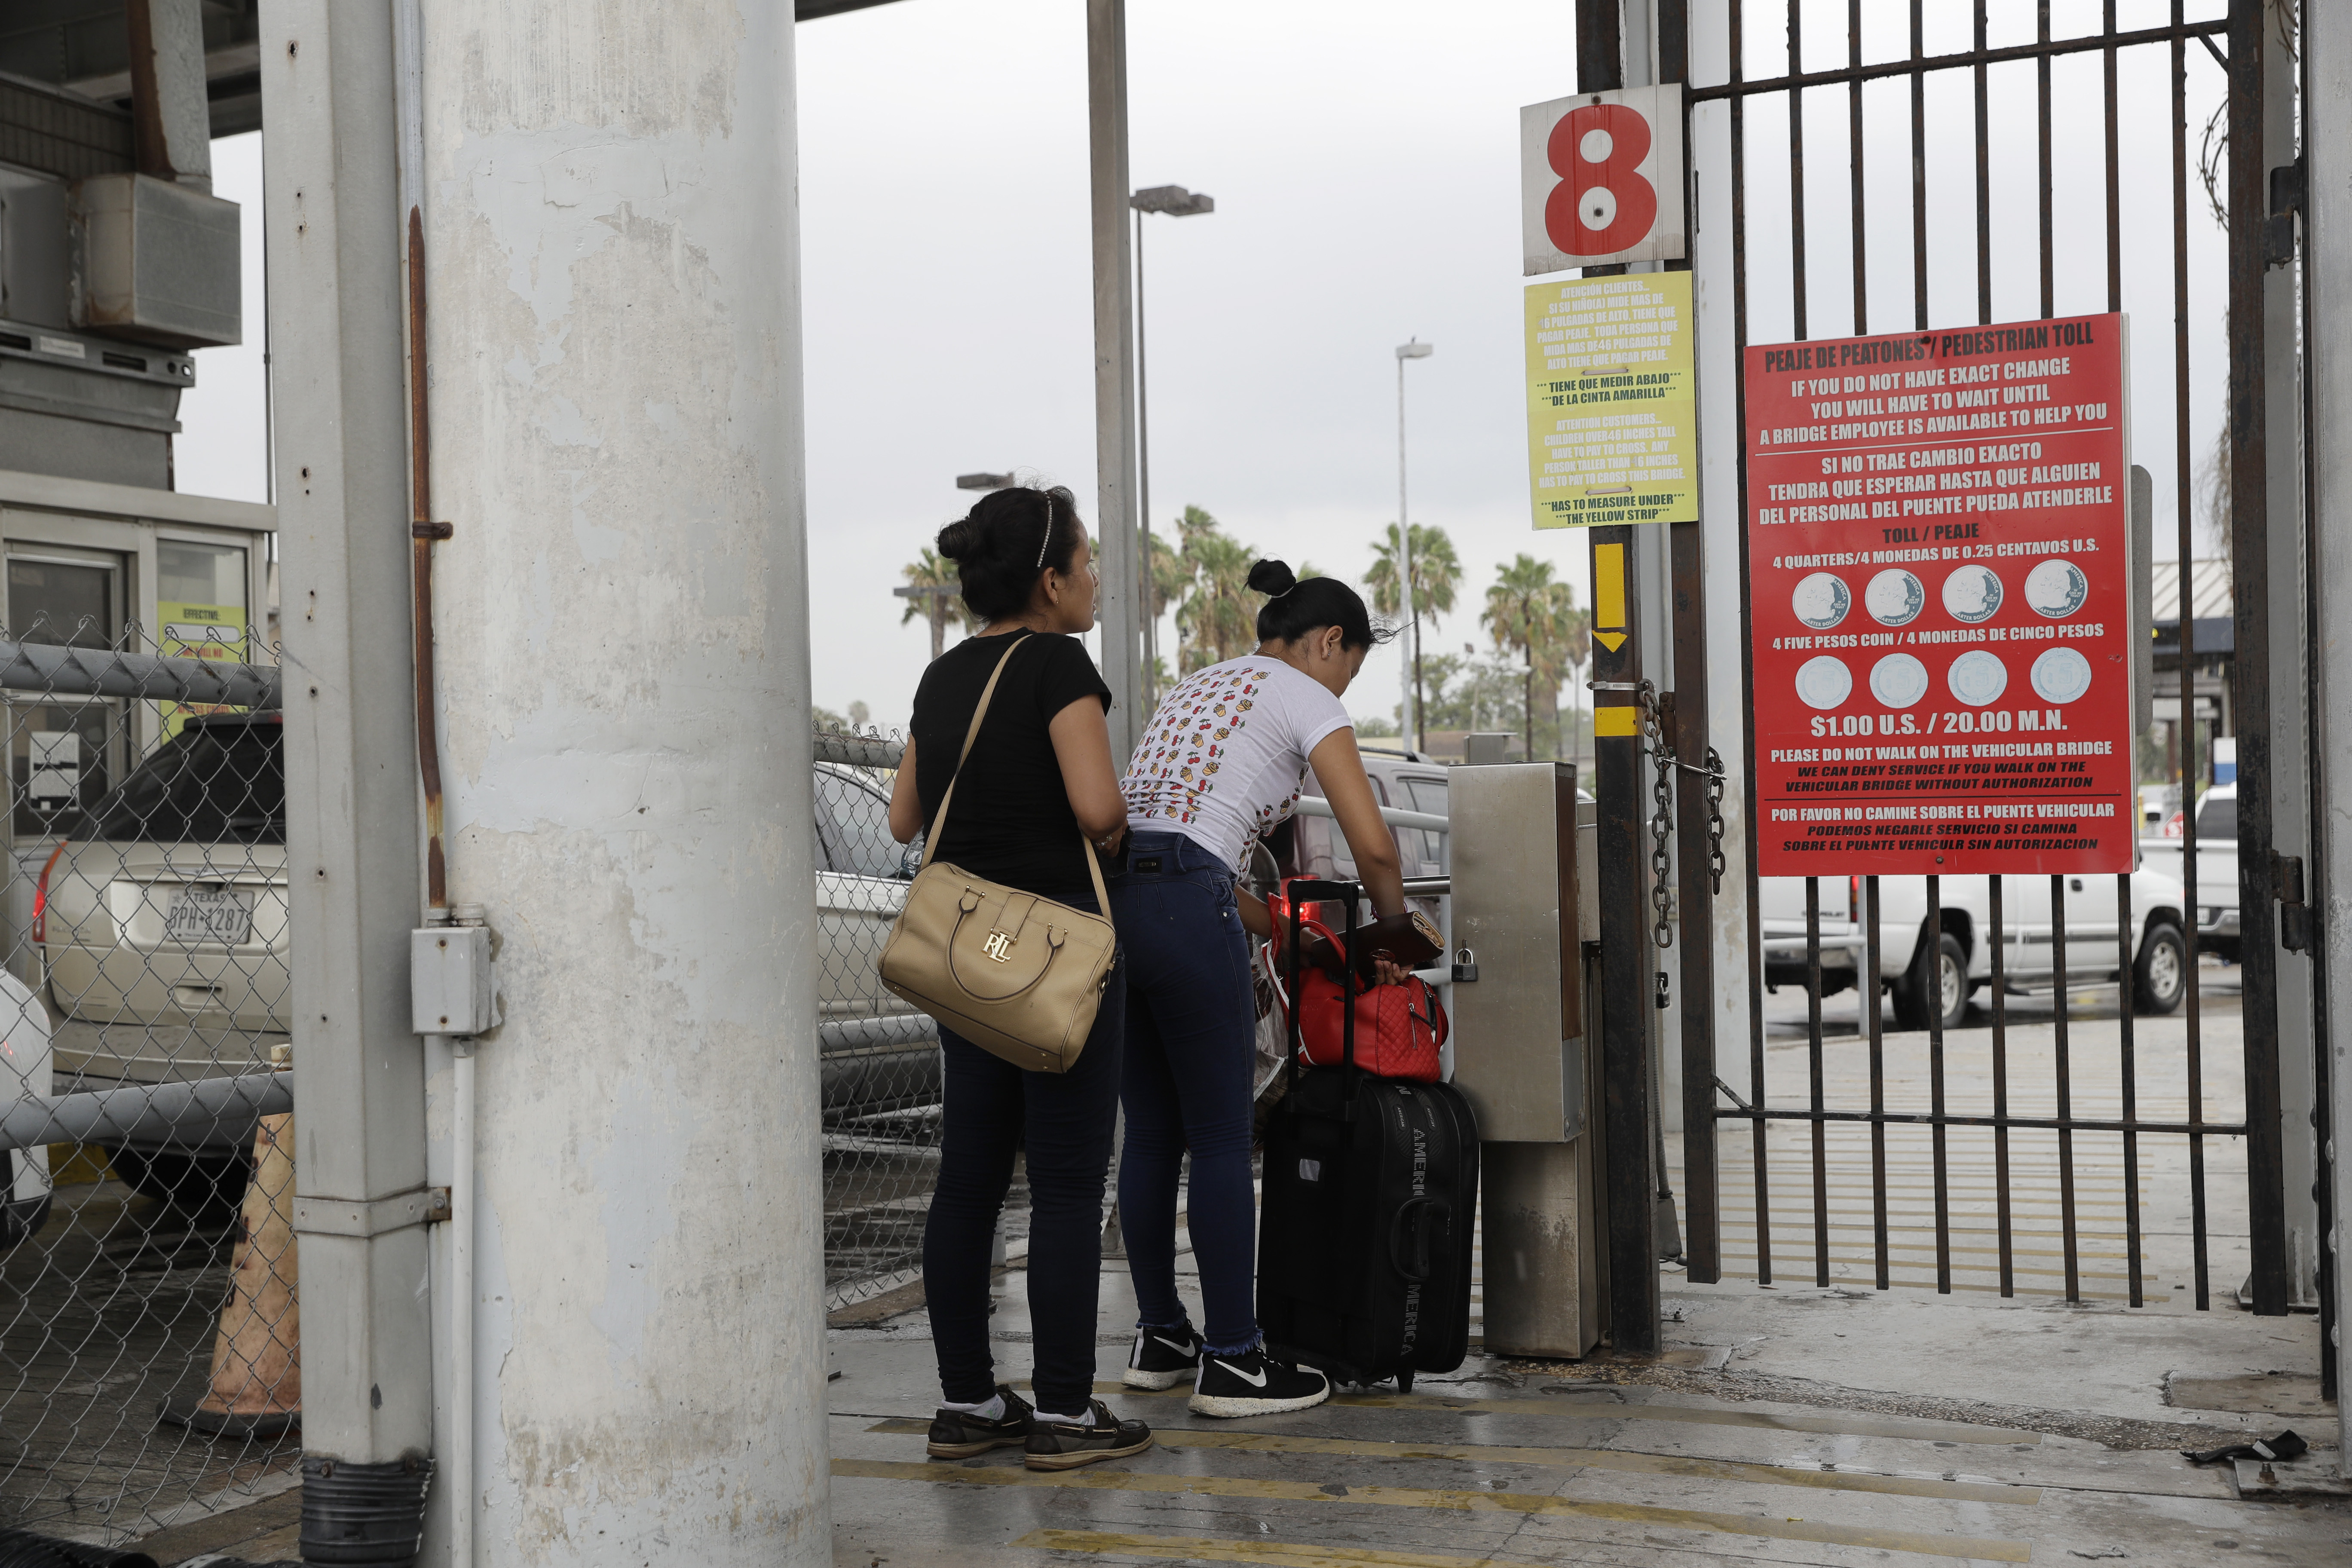 Josseline Garcia, 20, and Jennifer Garcia, 24, sisters from Guatemala seeking asylum, cross a bridge to a port of entry in to the United States from Matamoros, Mexico, Wednesday, June 20, 2018, in Brownsville, Texas.